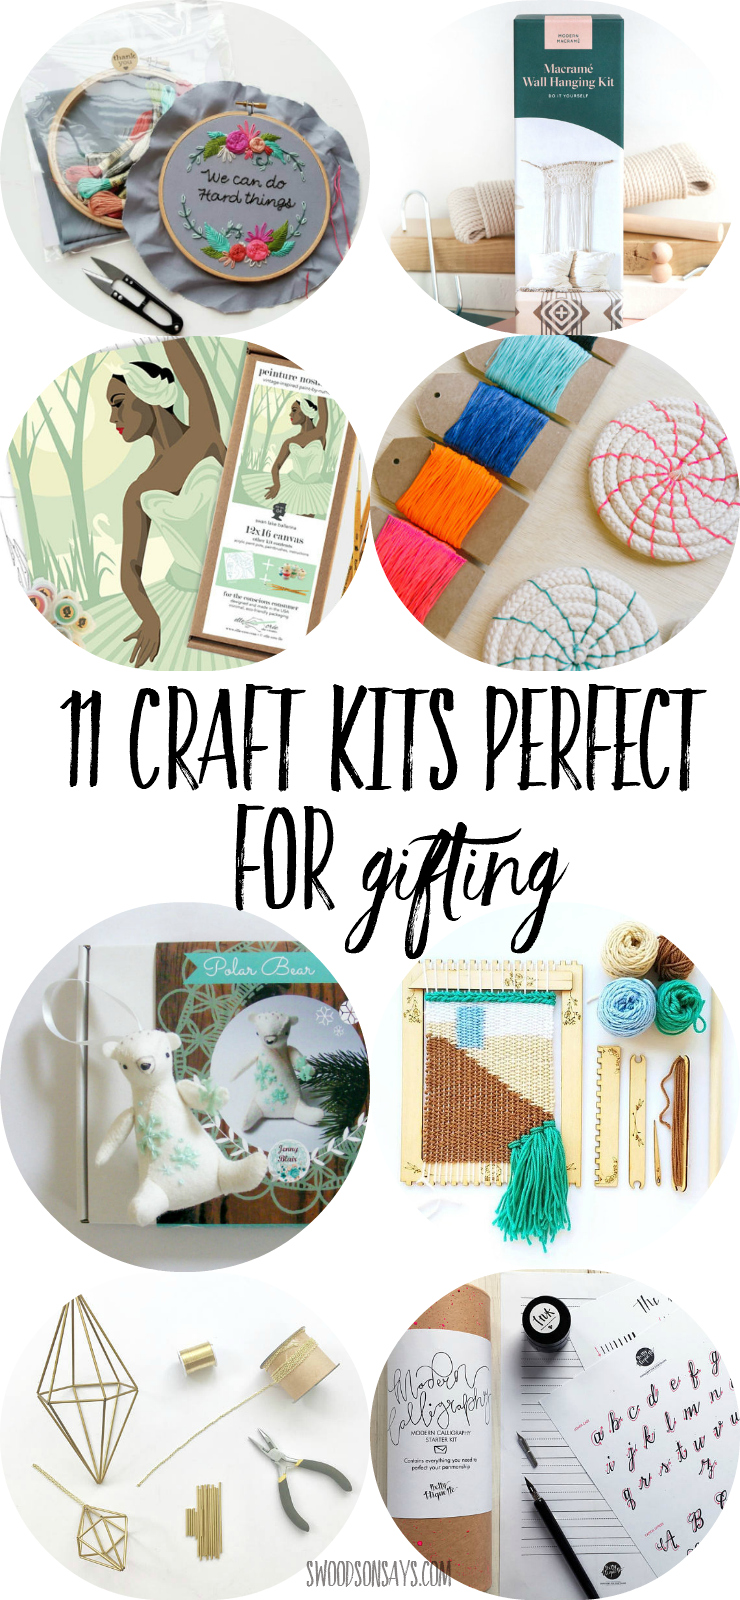 Hunting gift ideas for crafters? Help them try a new medium with these craft kids perfect for gifting! Craft kits mean they don't have to buy any supplies or hunt down tutorials, it is all included. Check out these modern craft kits and get shopping! #craftkit